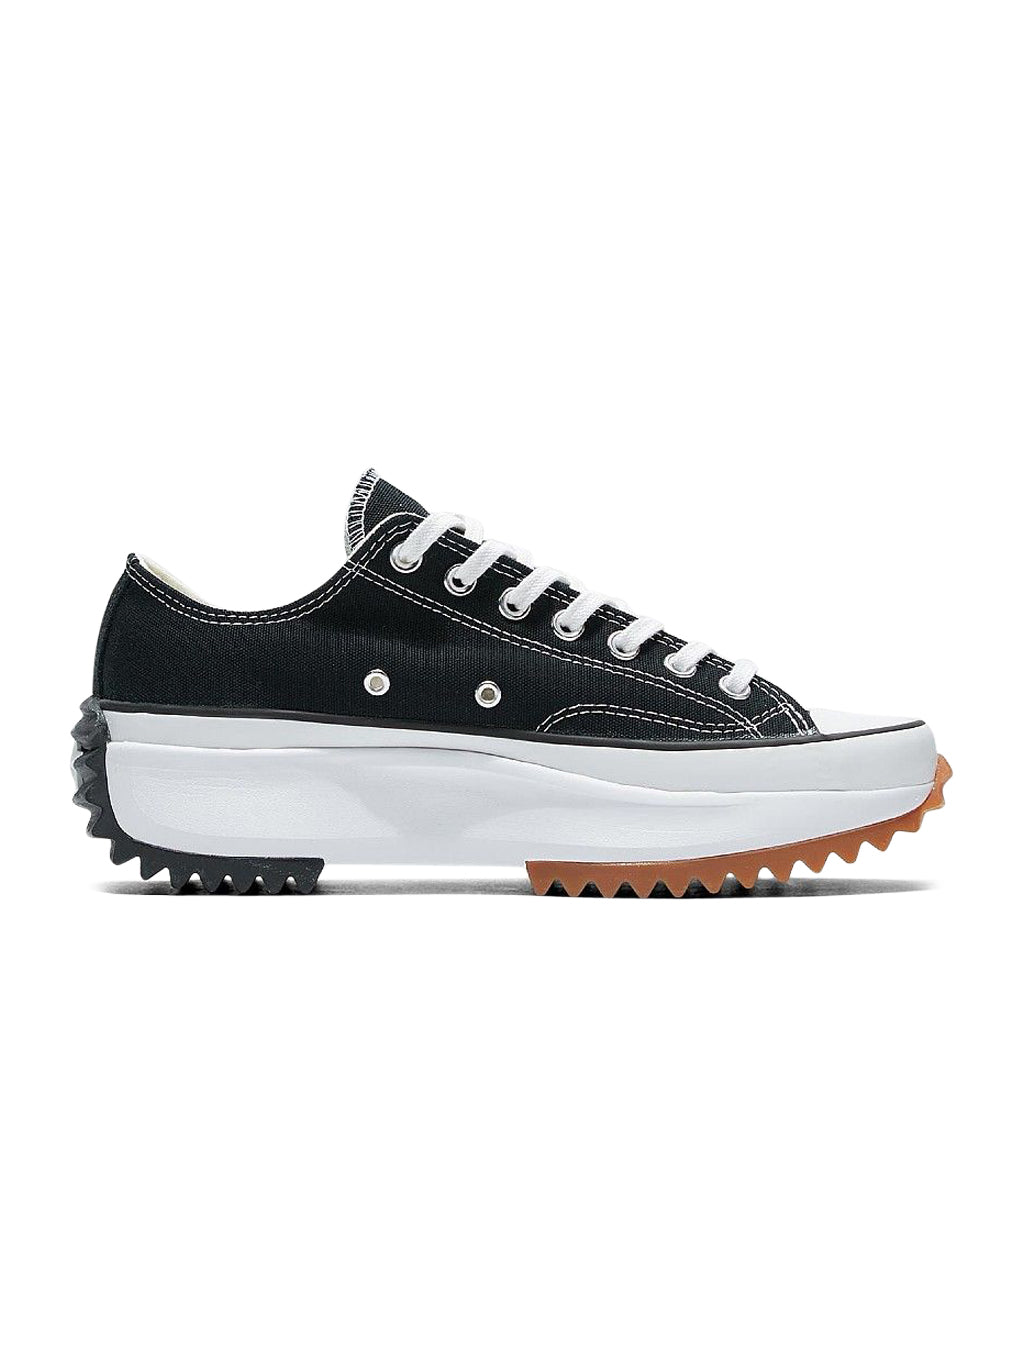 Black or White  Run Star Hike Ox Sneakers